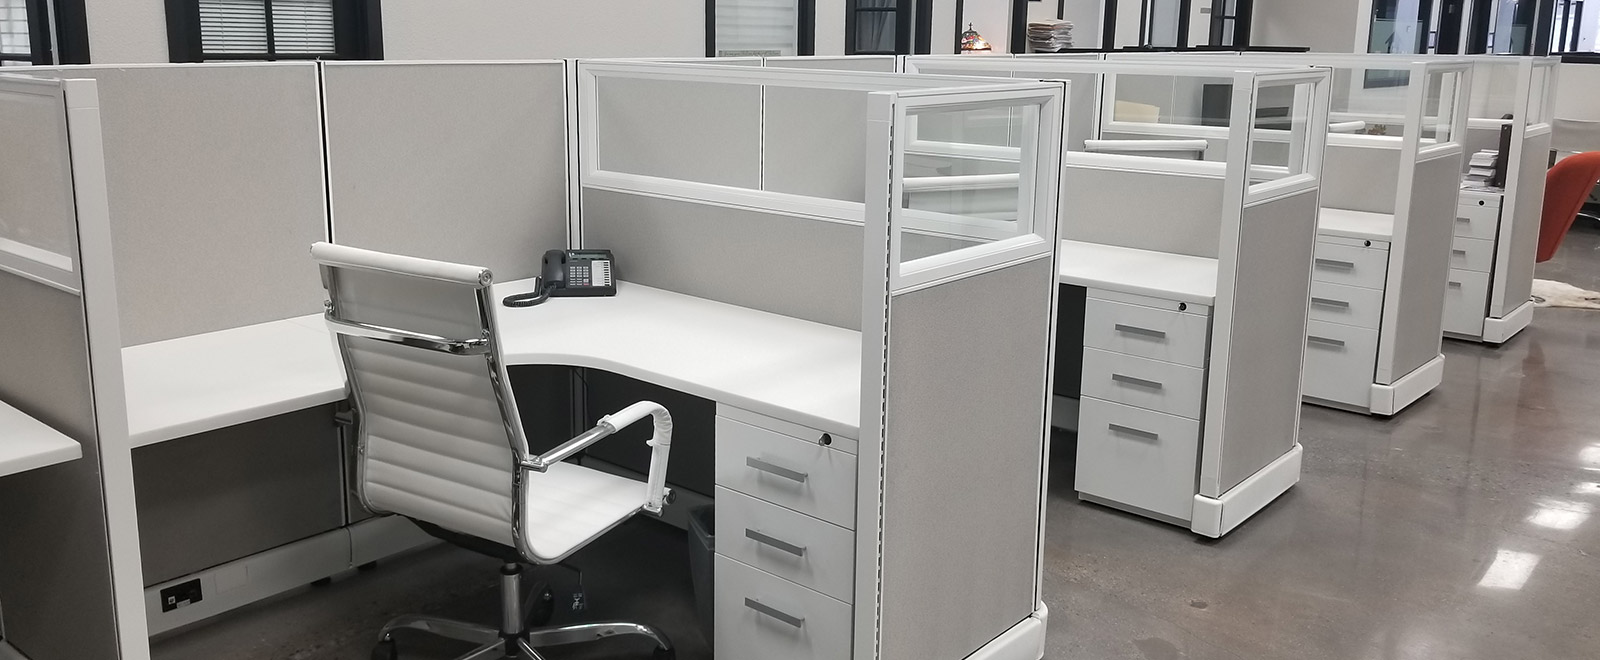 New, Used & Refurbished Office Furniture